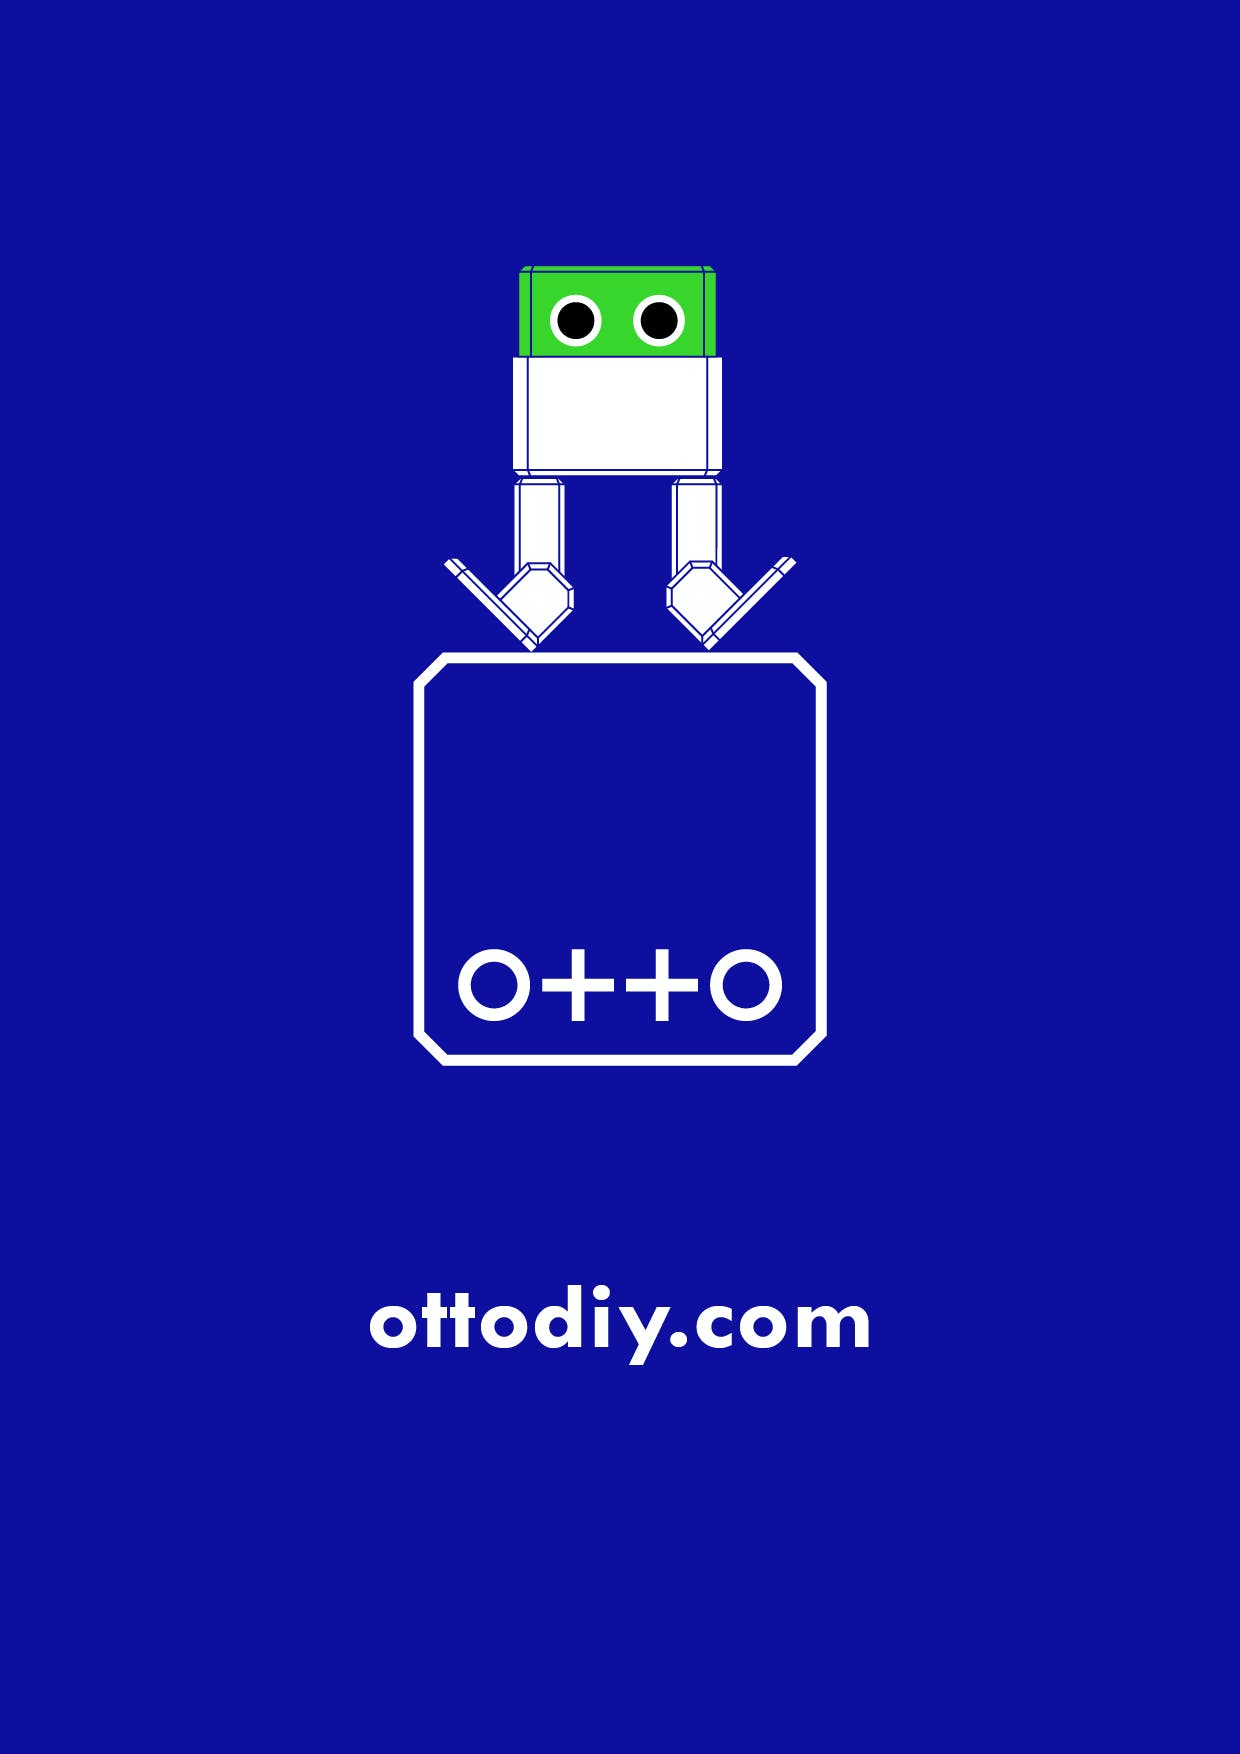 sign up as Ottobuilder in our website